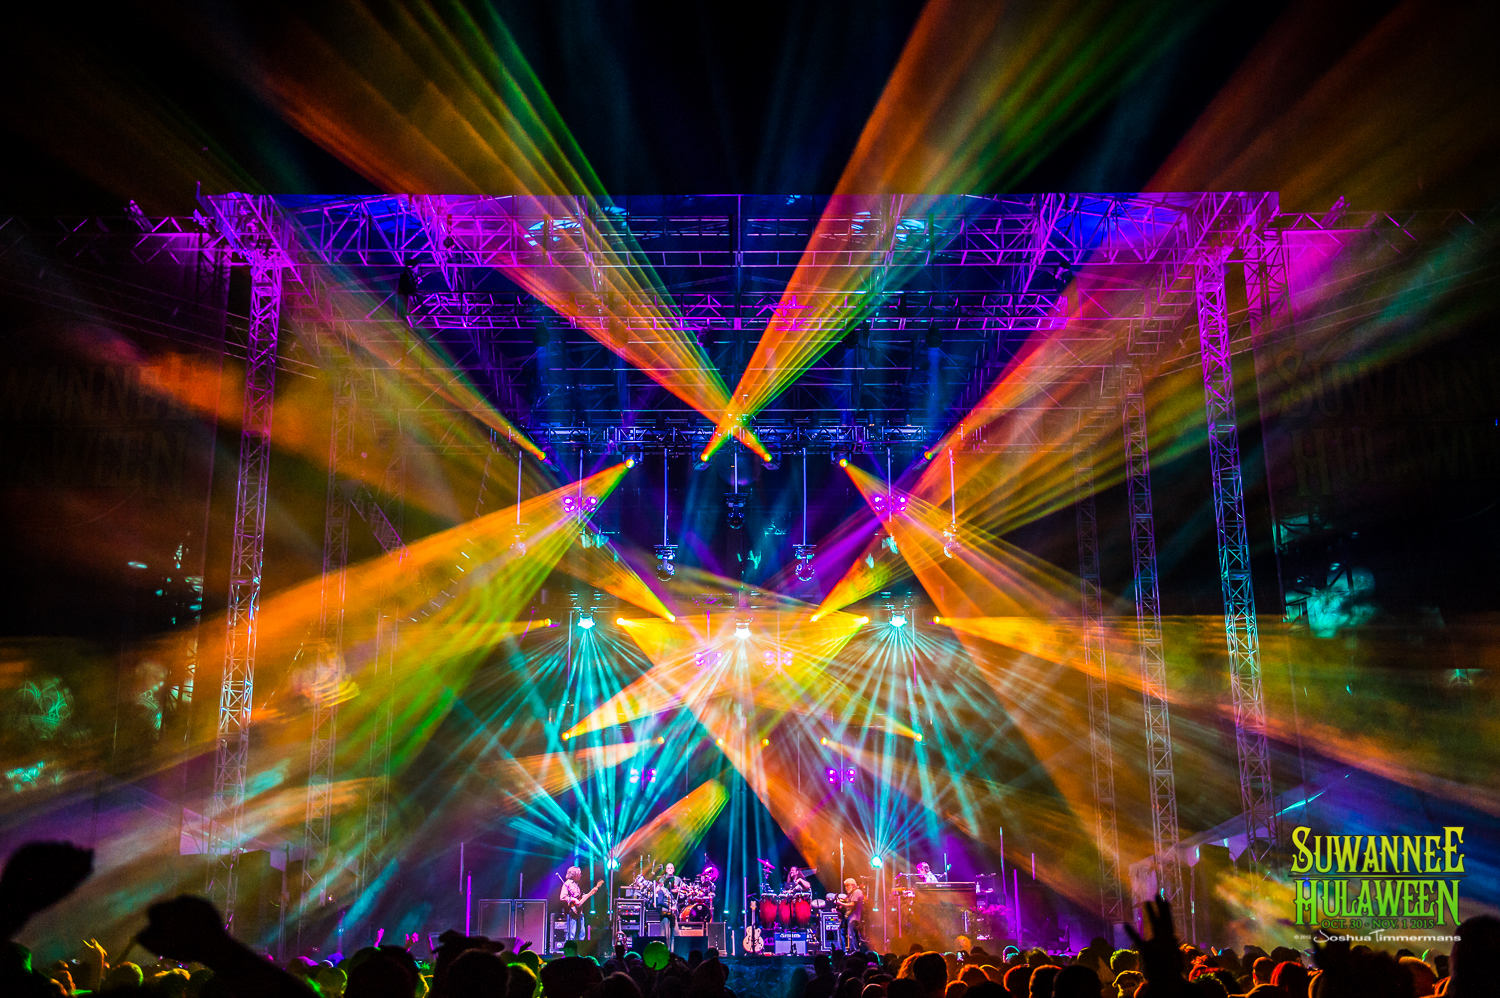 hulaween-day-2-timmermans-20151030-2583